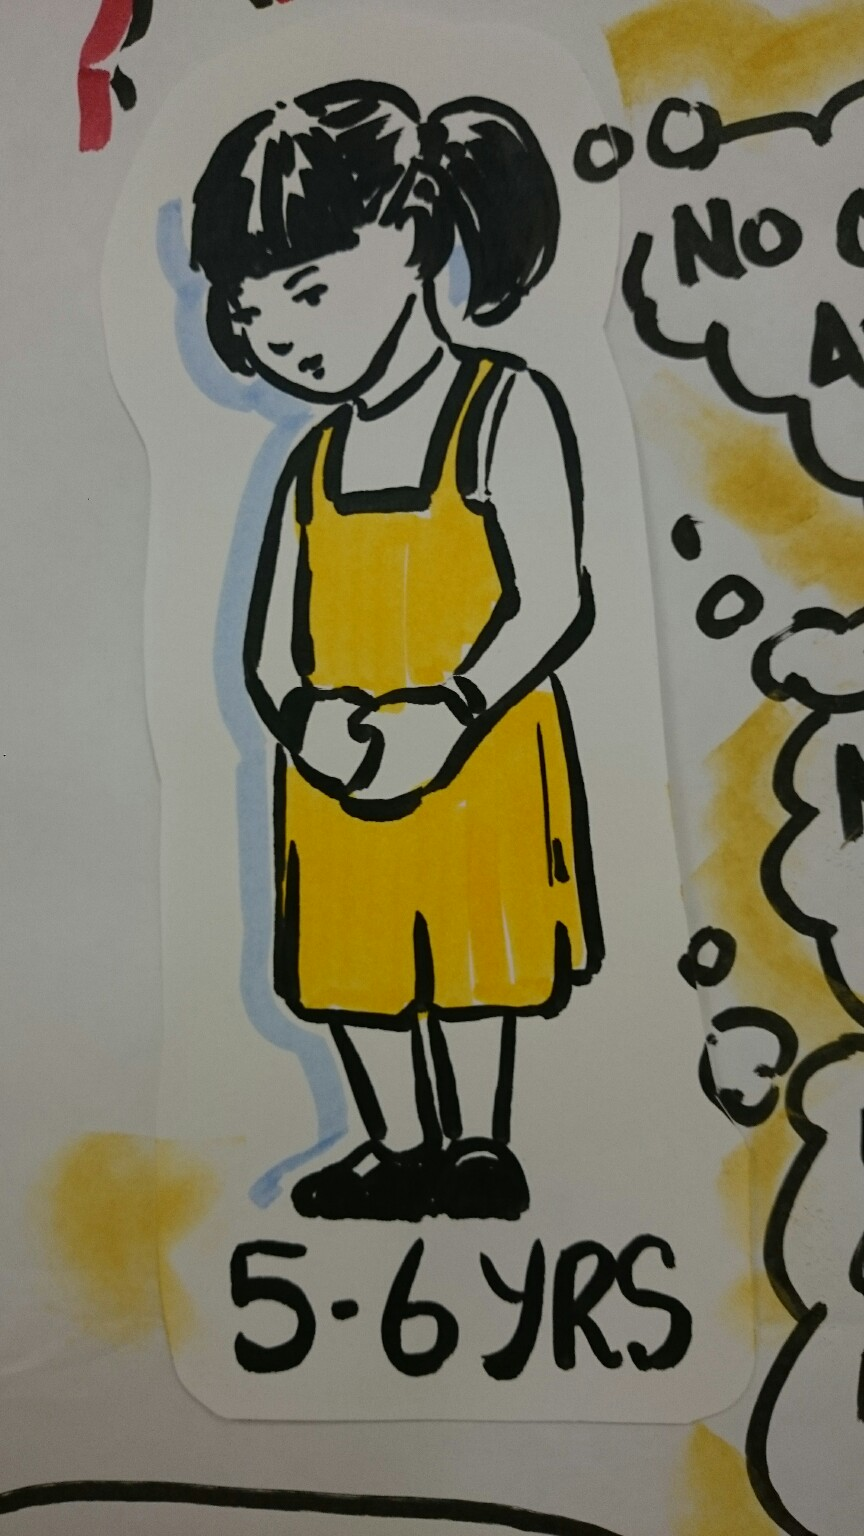 Marker drawing of a 5 or 6 year old girl, wearing yellow.